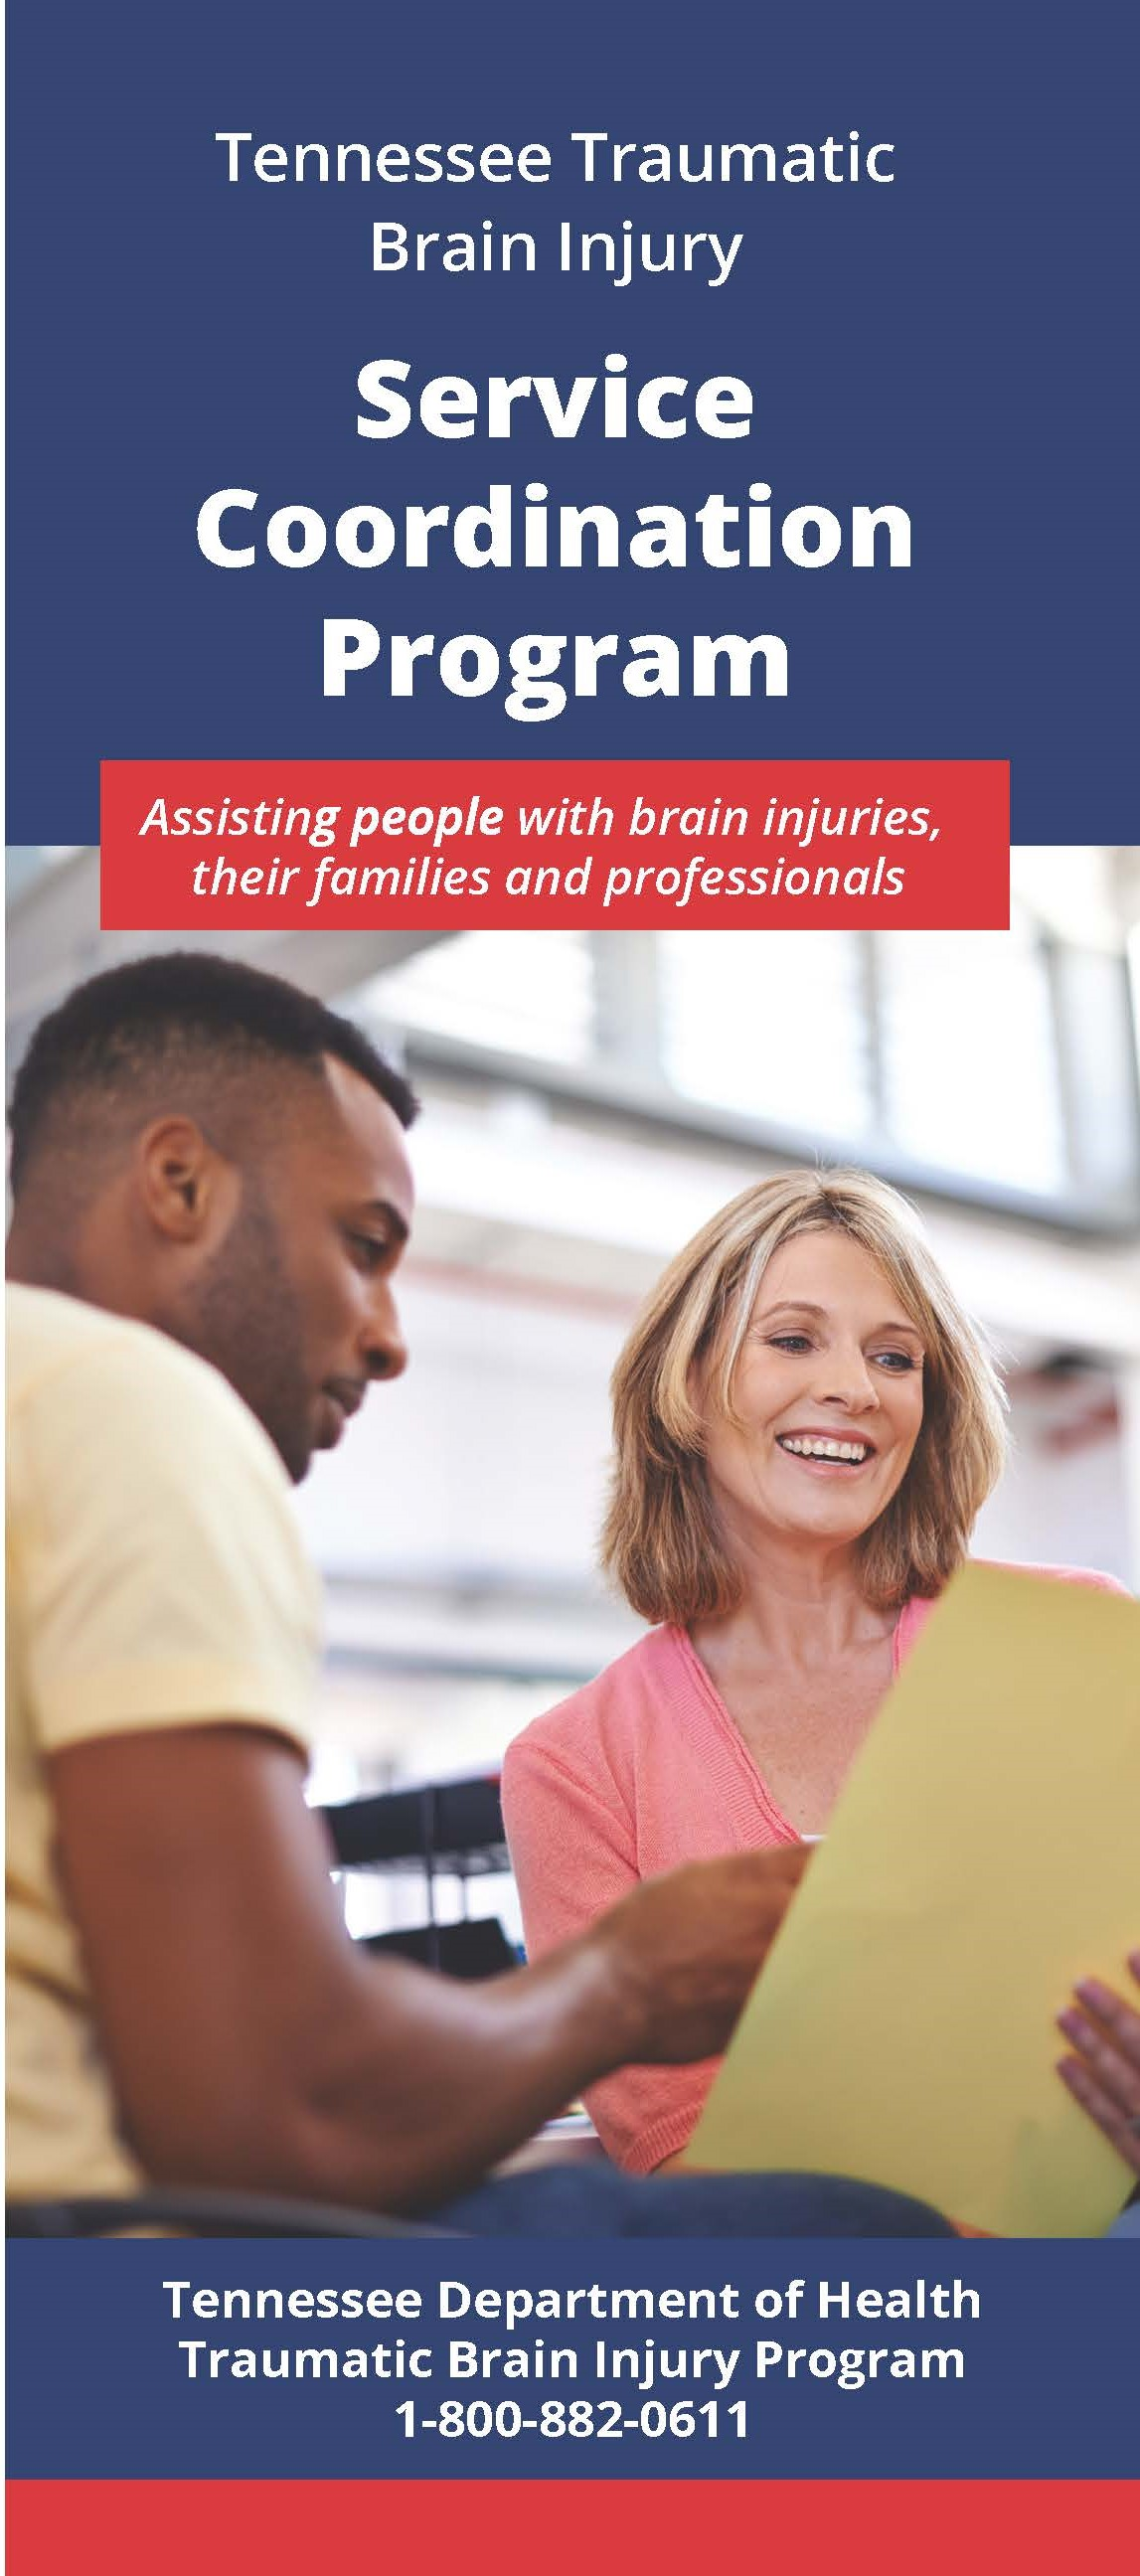 Image of man and woman talking - TBI Service Coordination Brochure